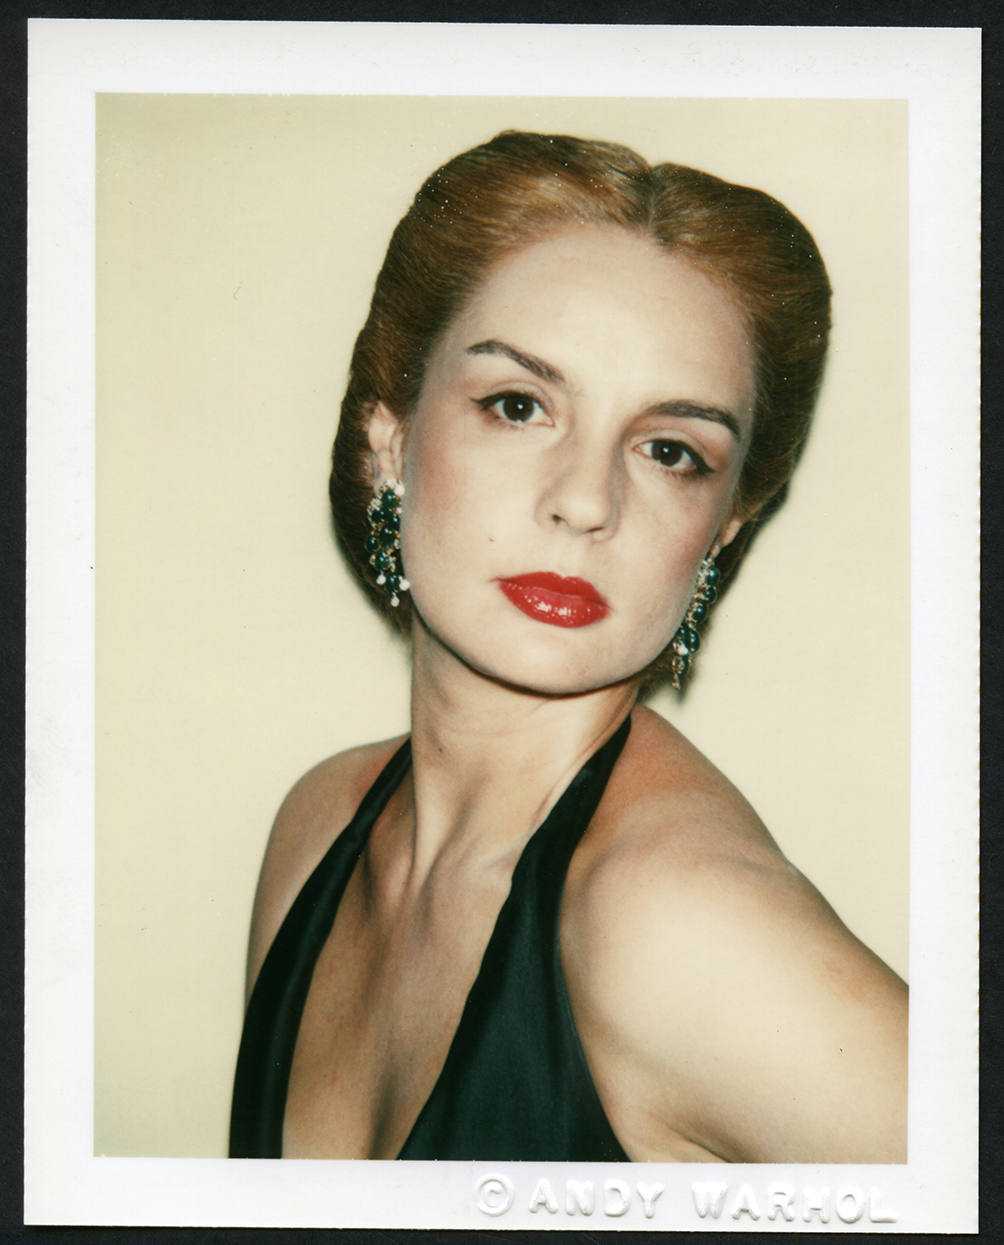 Carolina Herrera 1978 Andy Warhol The Andy Warhol Foundation For The Visual Arts Inc Dacsartimage 2018